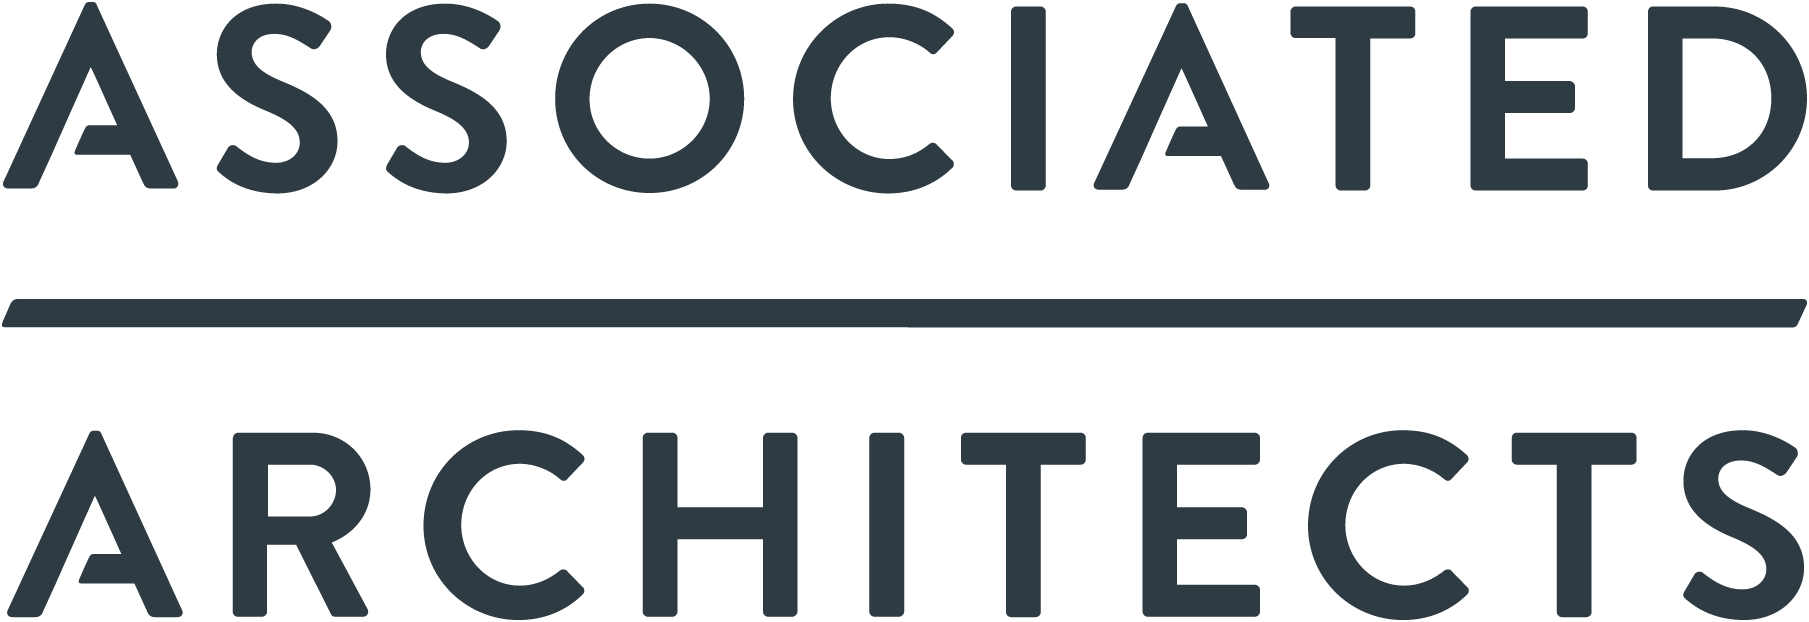 associated-architects-logo